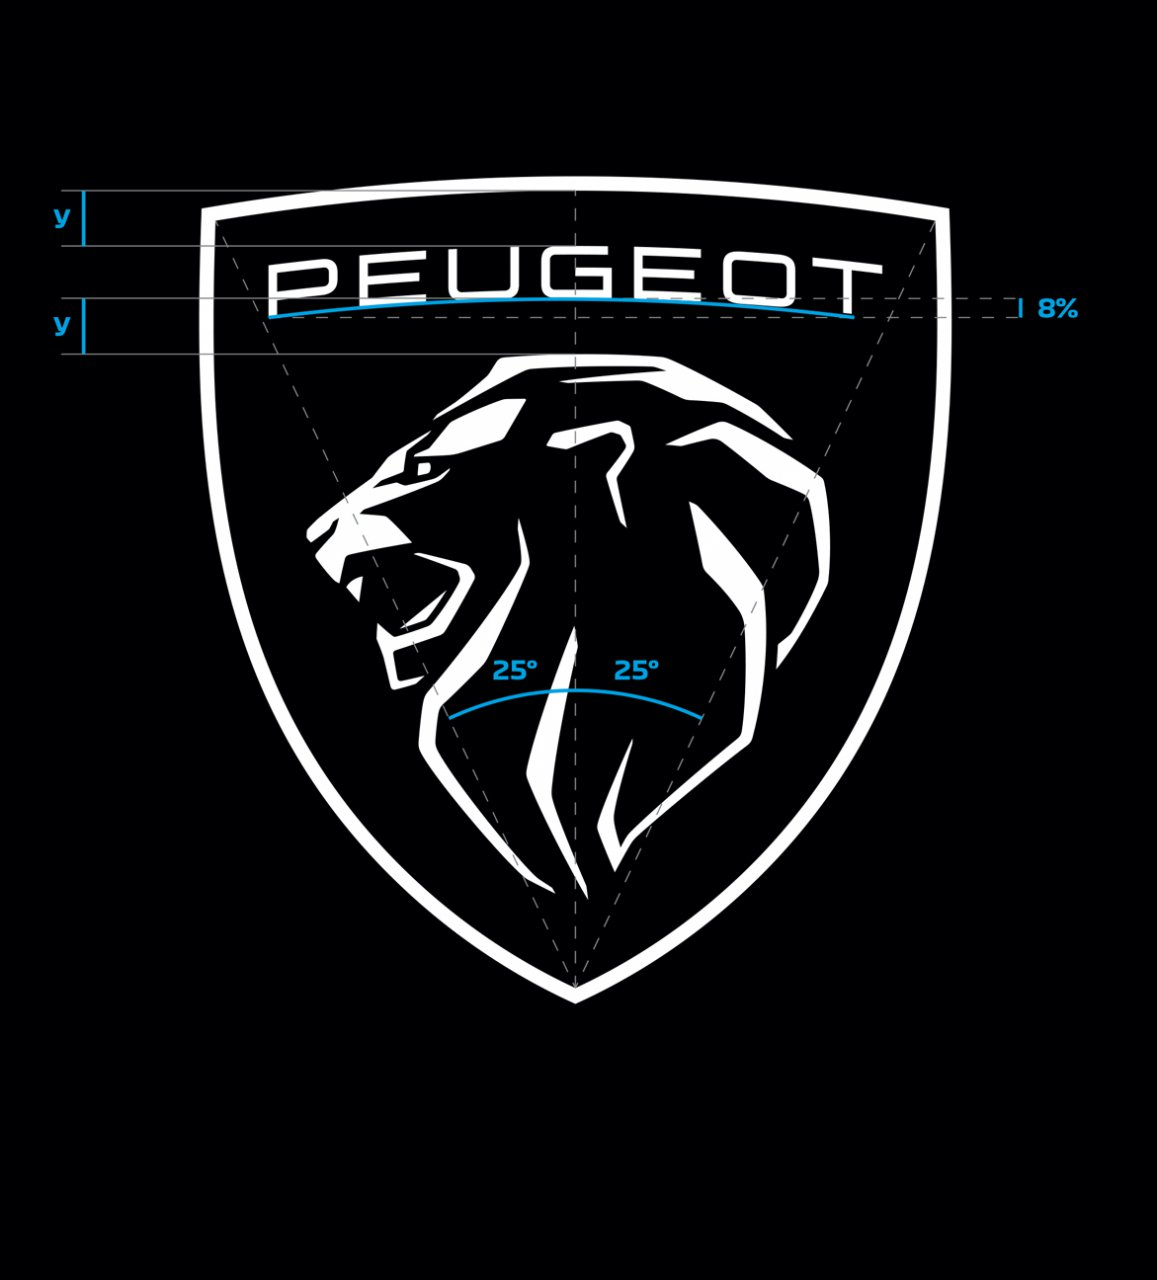 Peugeot, Another automaker changes logo for digital-age display, ClassicCars.com Journal